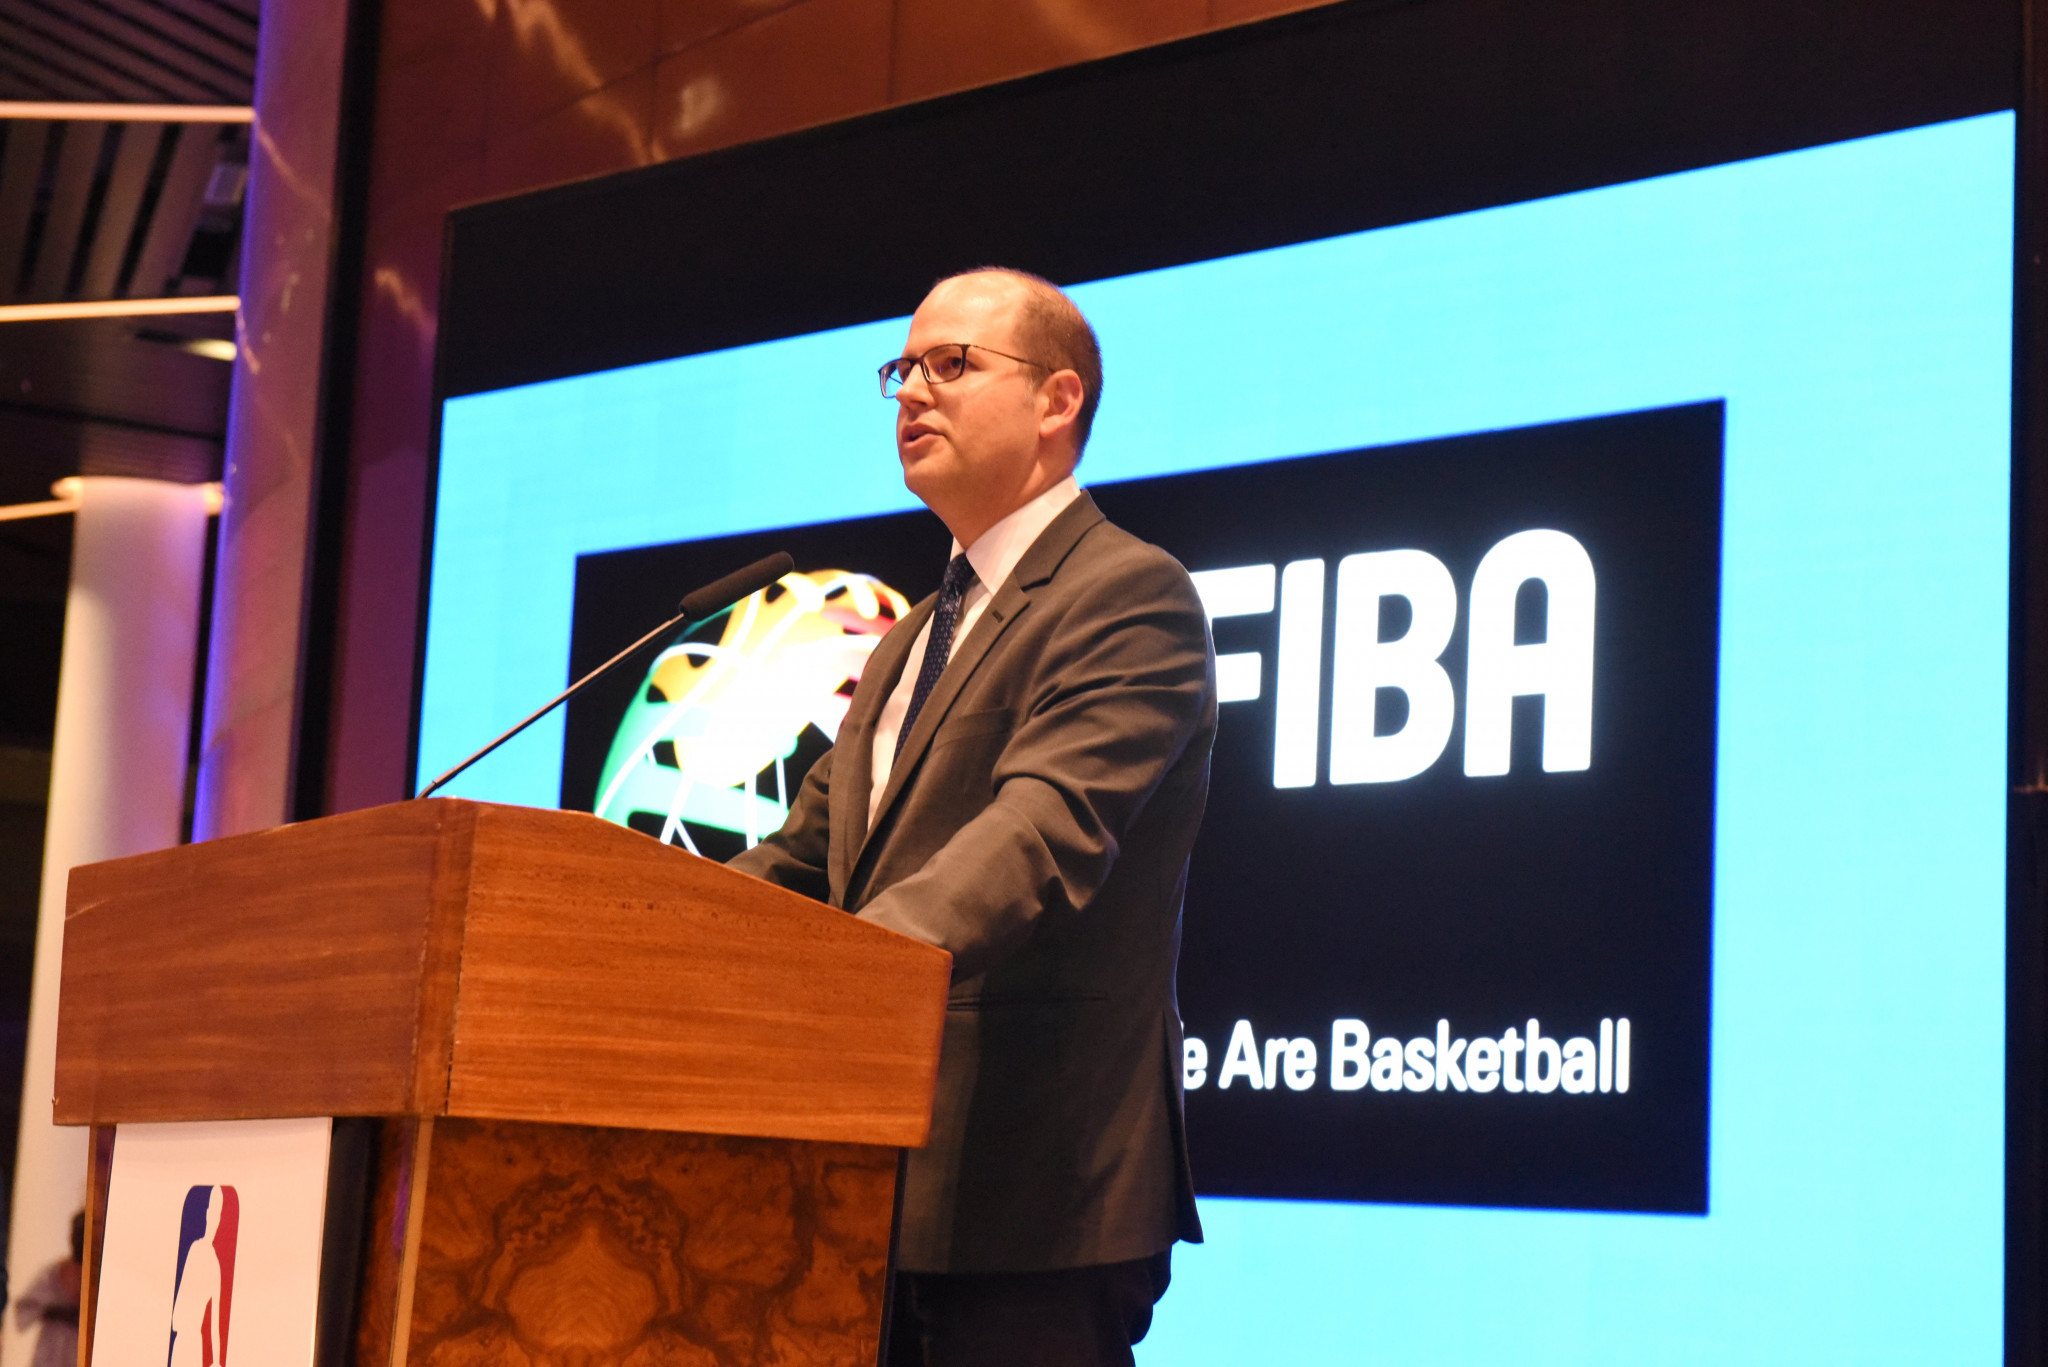 FIBA secretary general Andreas Zagklis said the world governing body is happy to see the IWBF embrace the technology ©Getty Images